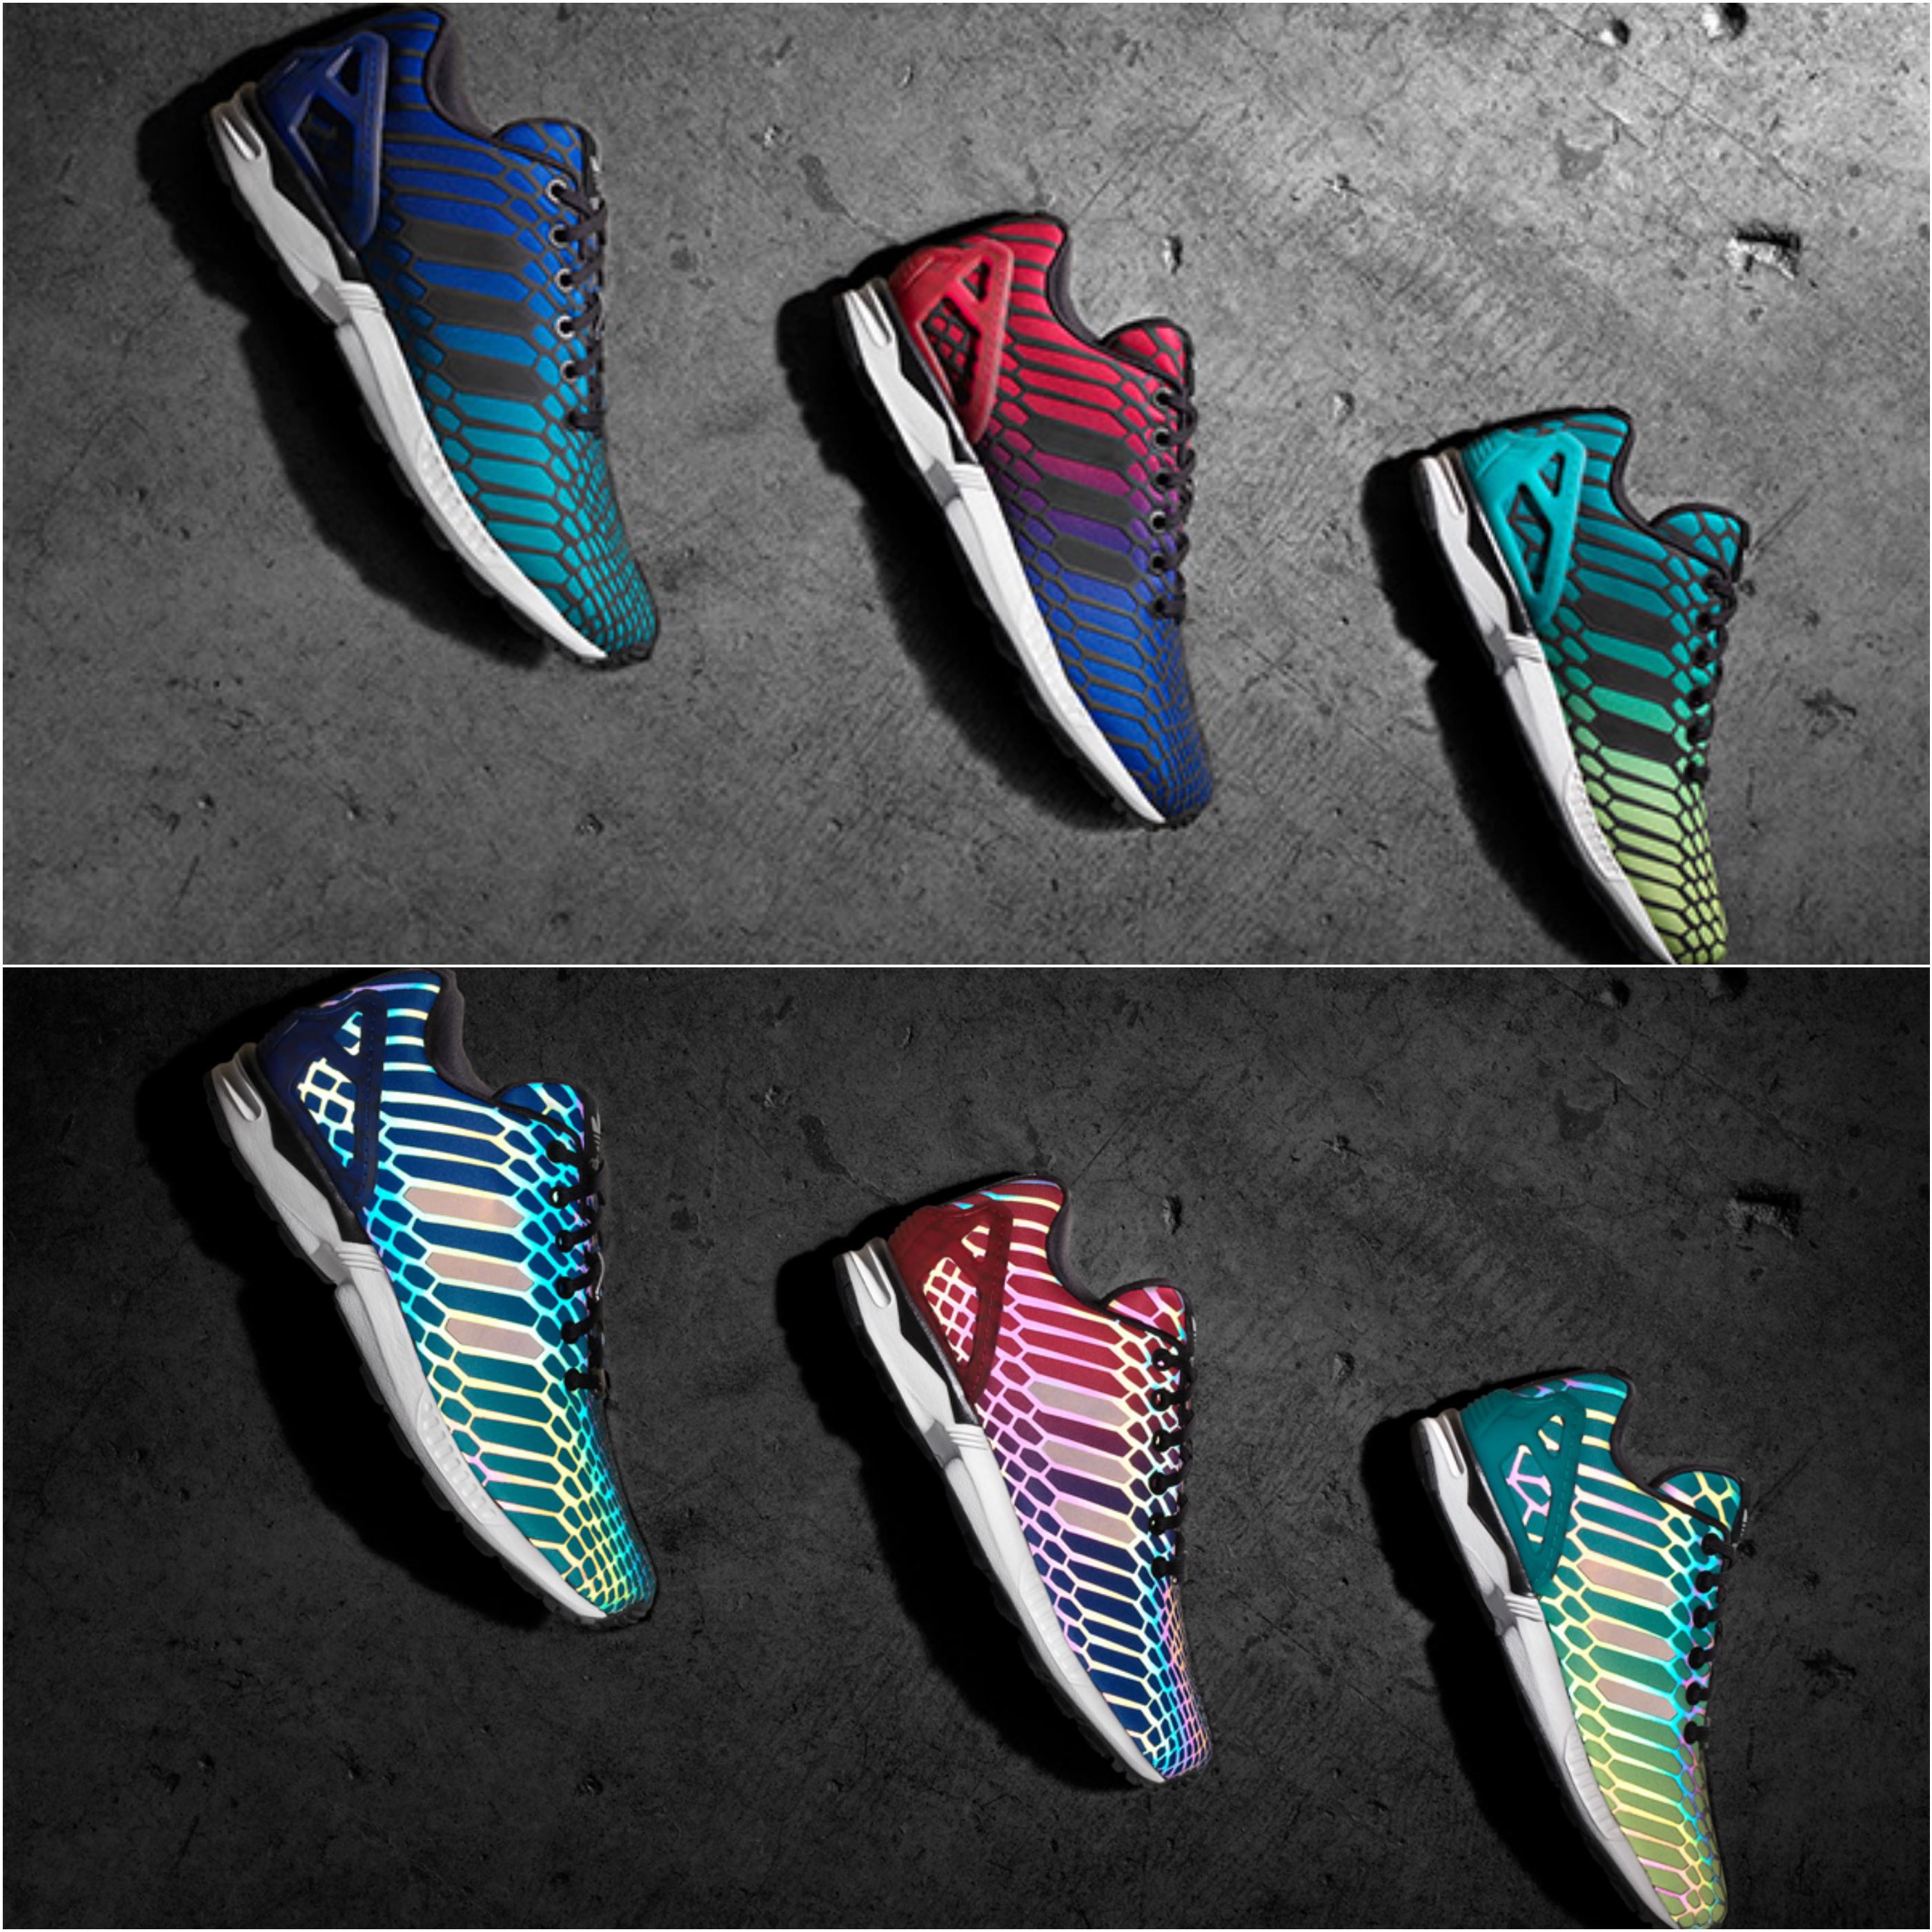 Grab The adidas ZX Flux XENO For Retail TheShoeGame